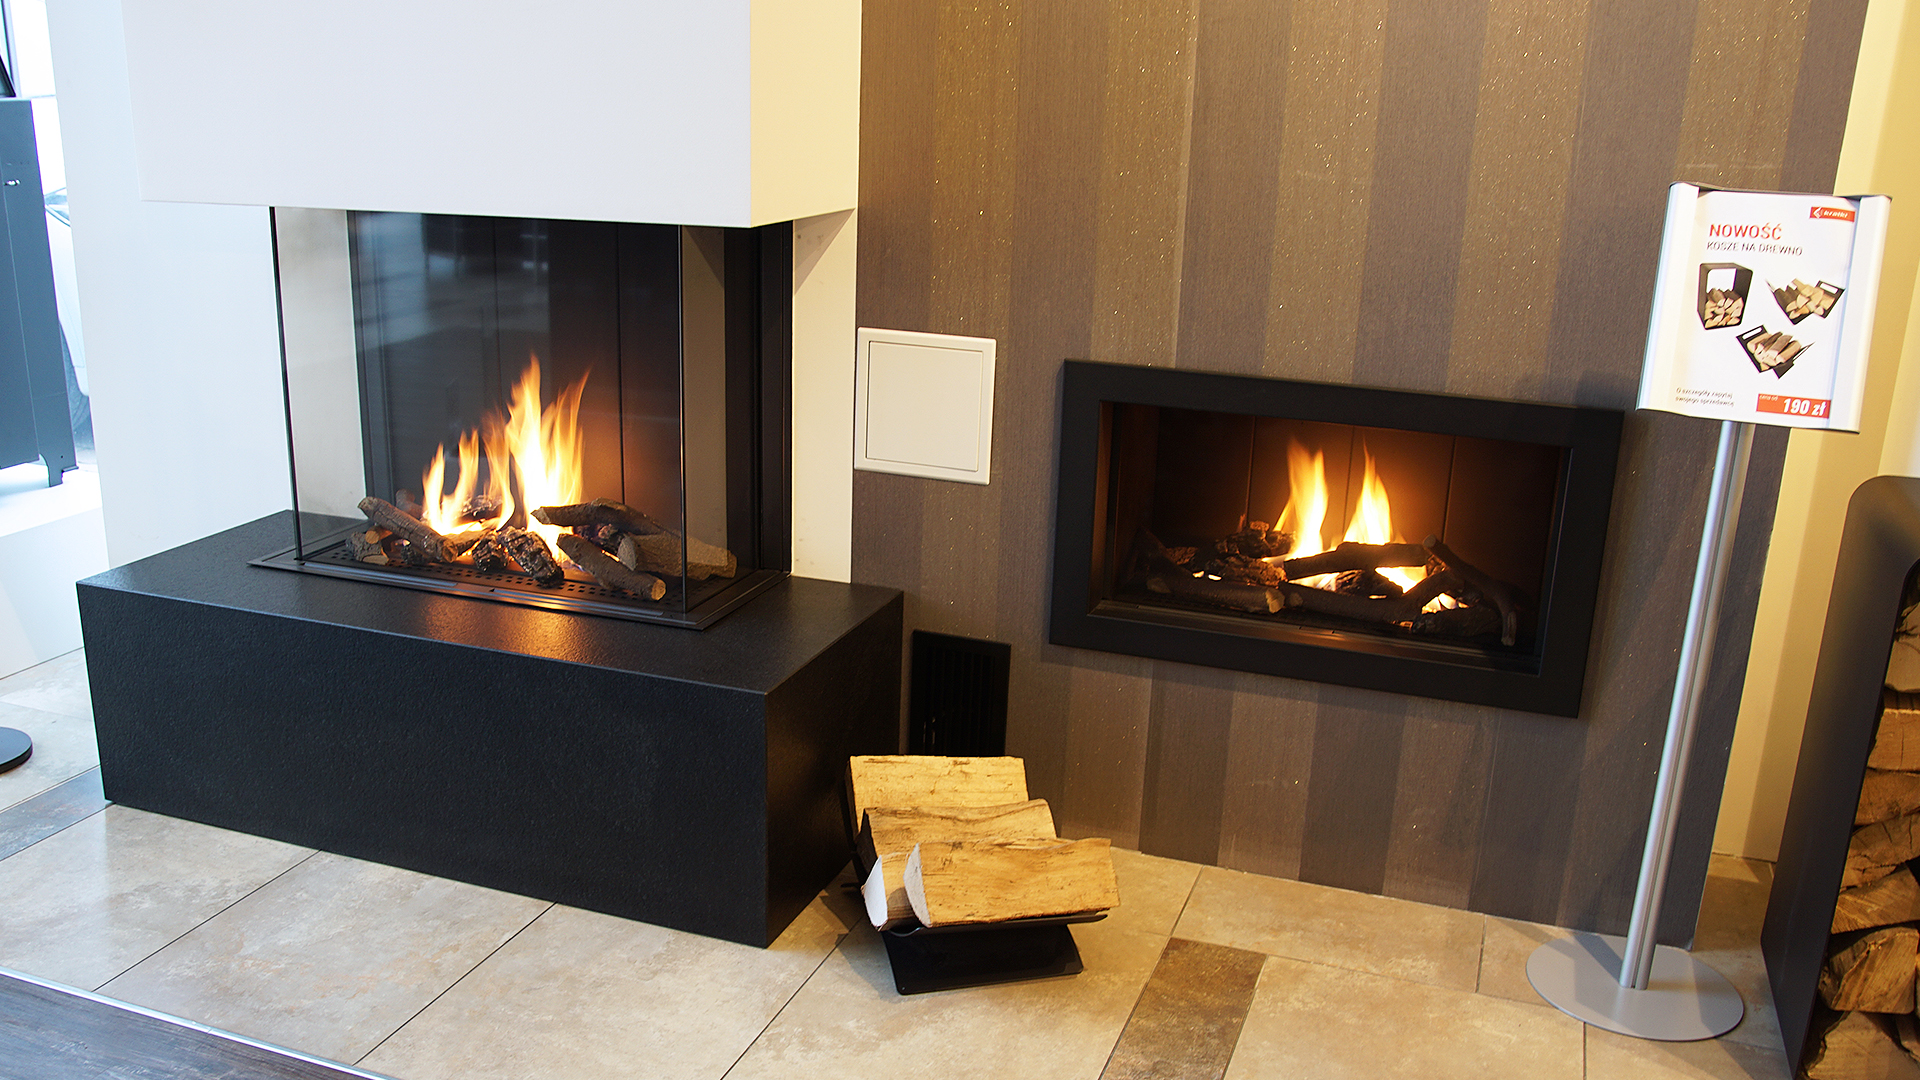 Gas fireplace LEO 70 for natural gas